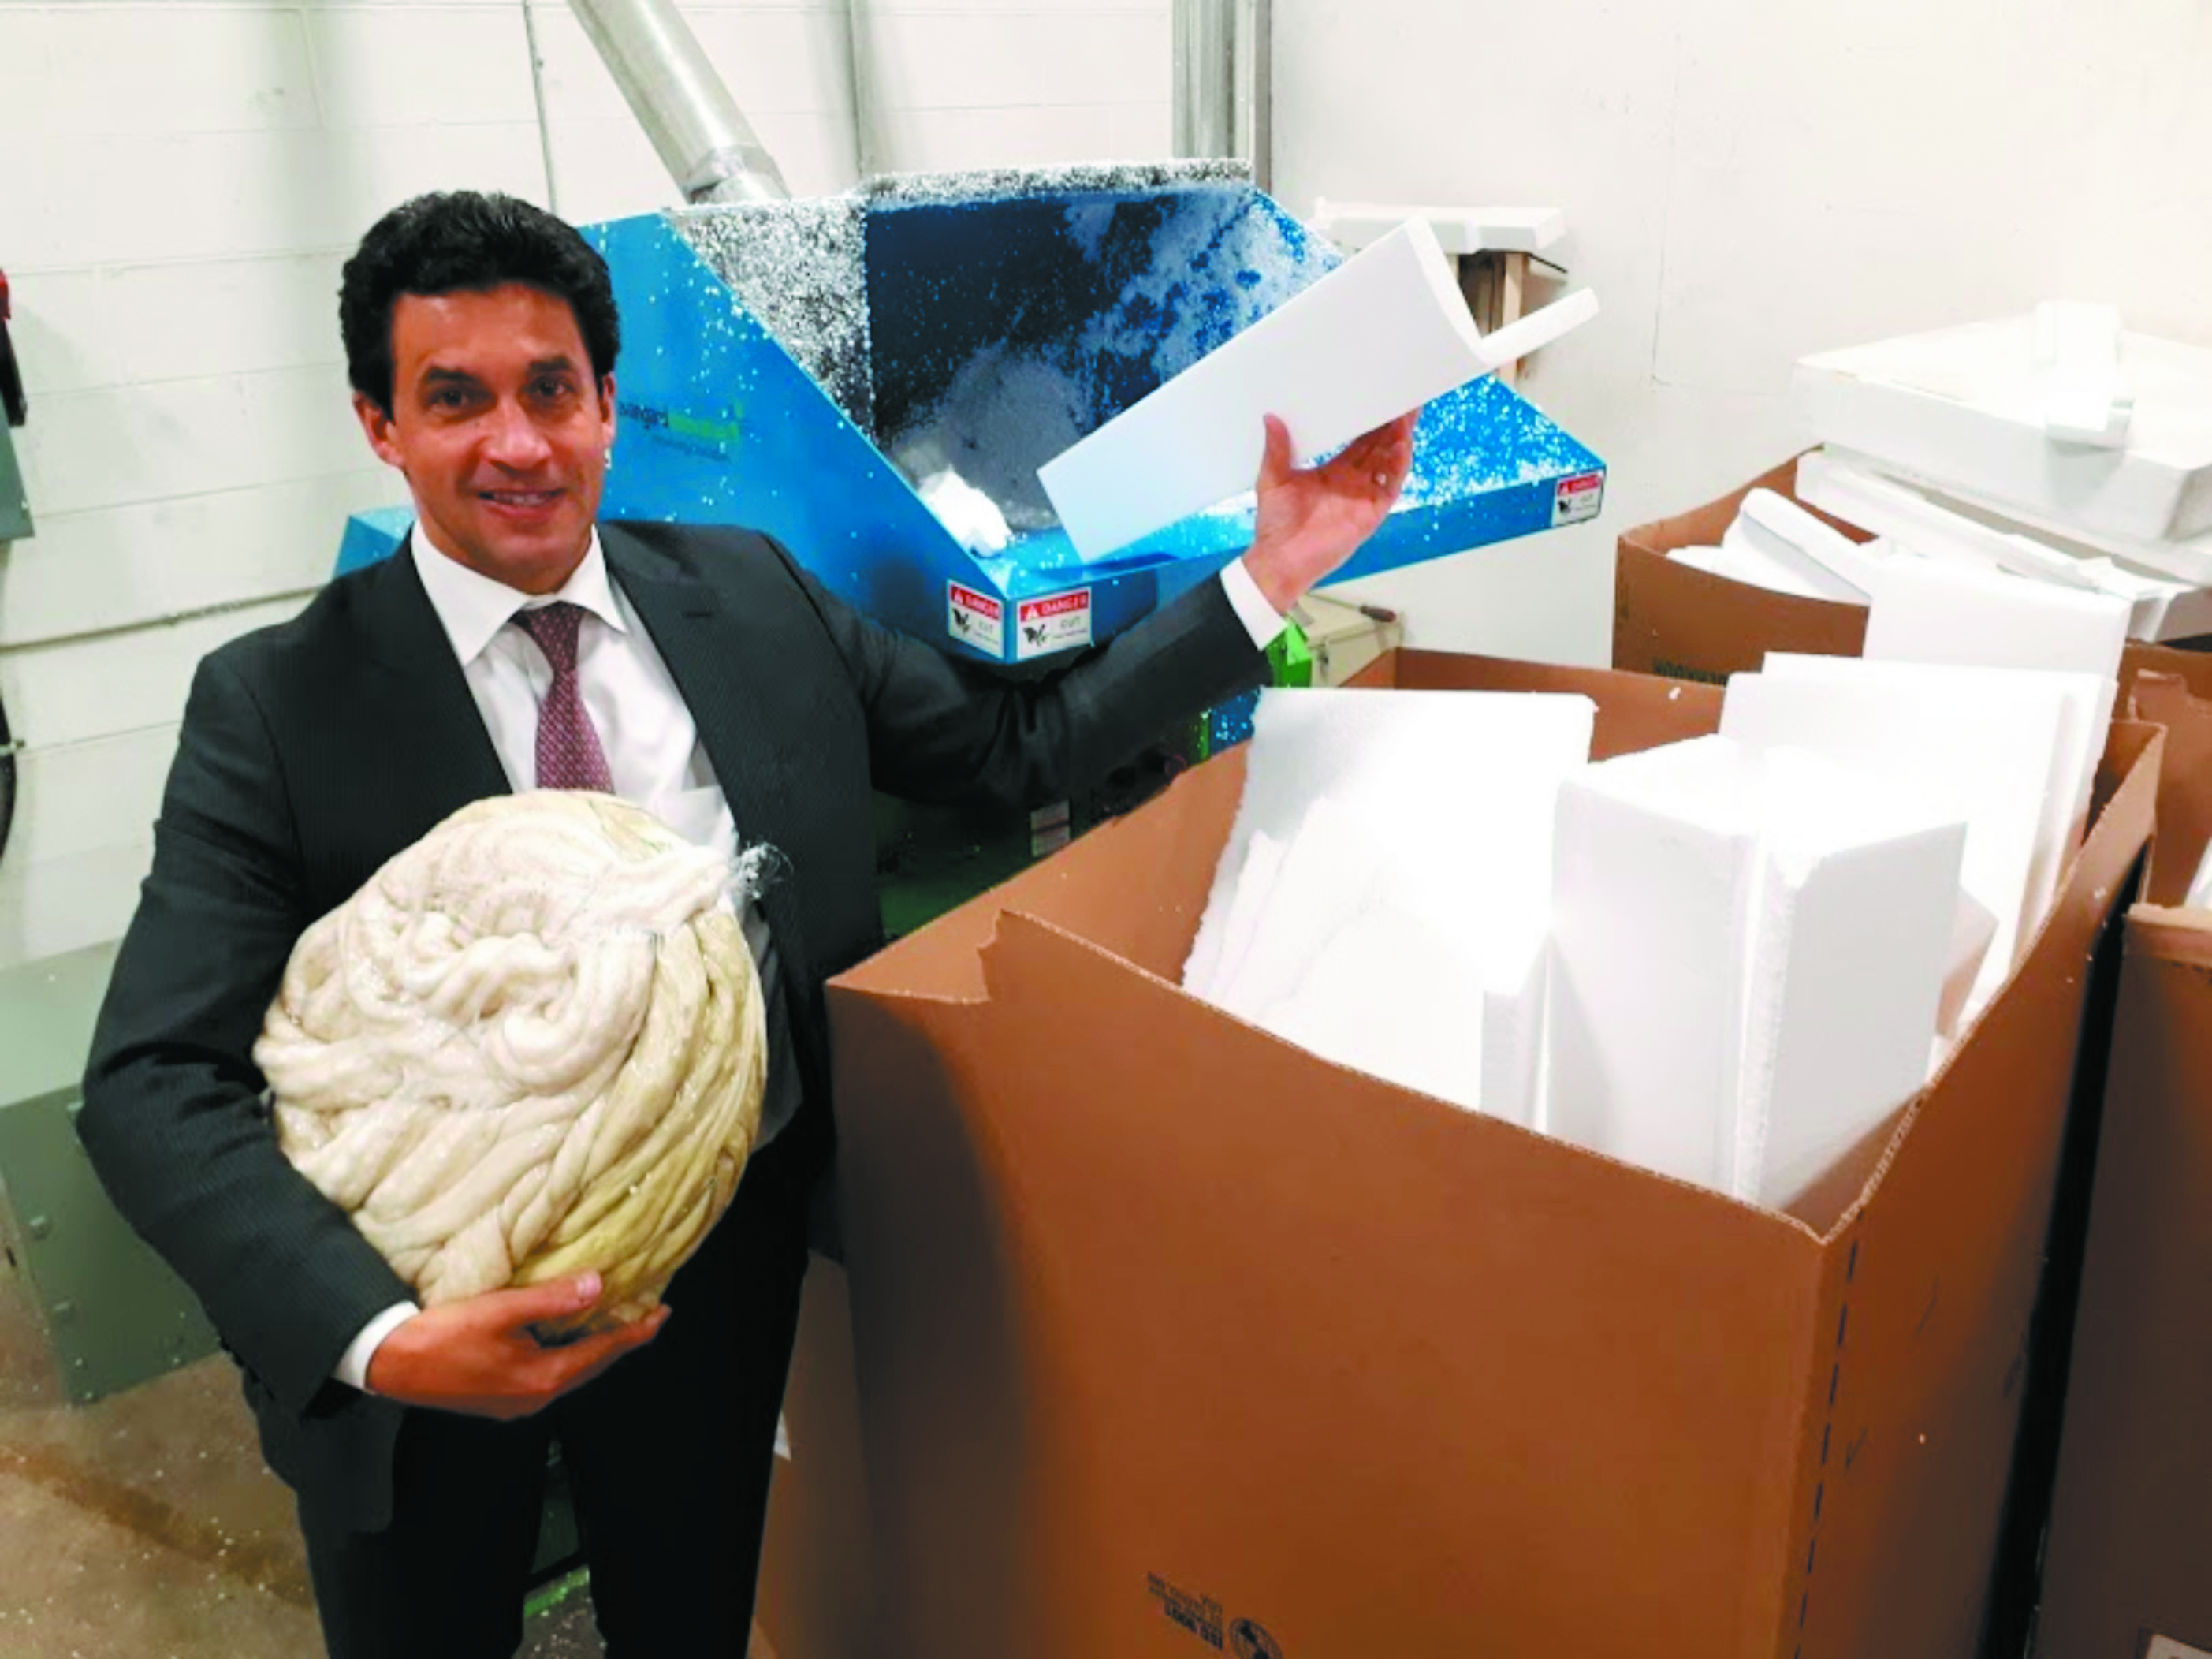 Tepperman's president Andrew Tepperman in front of the emulsifier, which converts Styrofoam into pucks to be recycled.